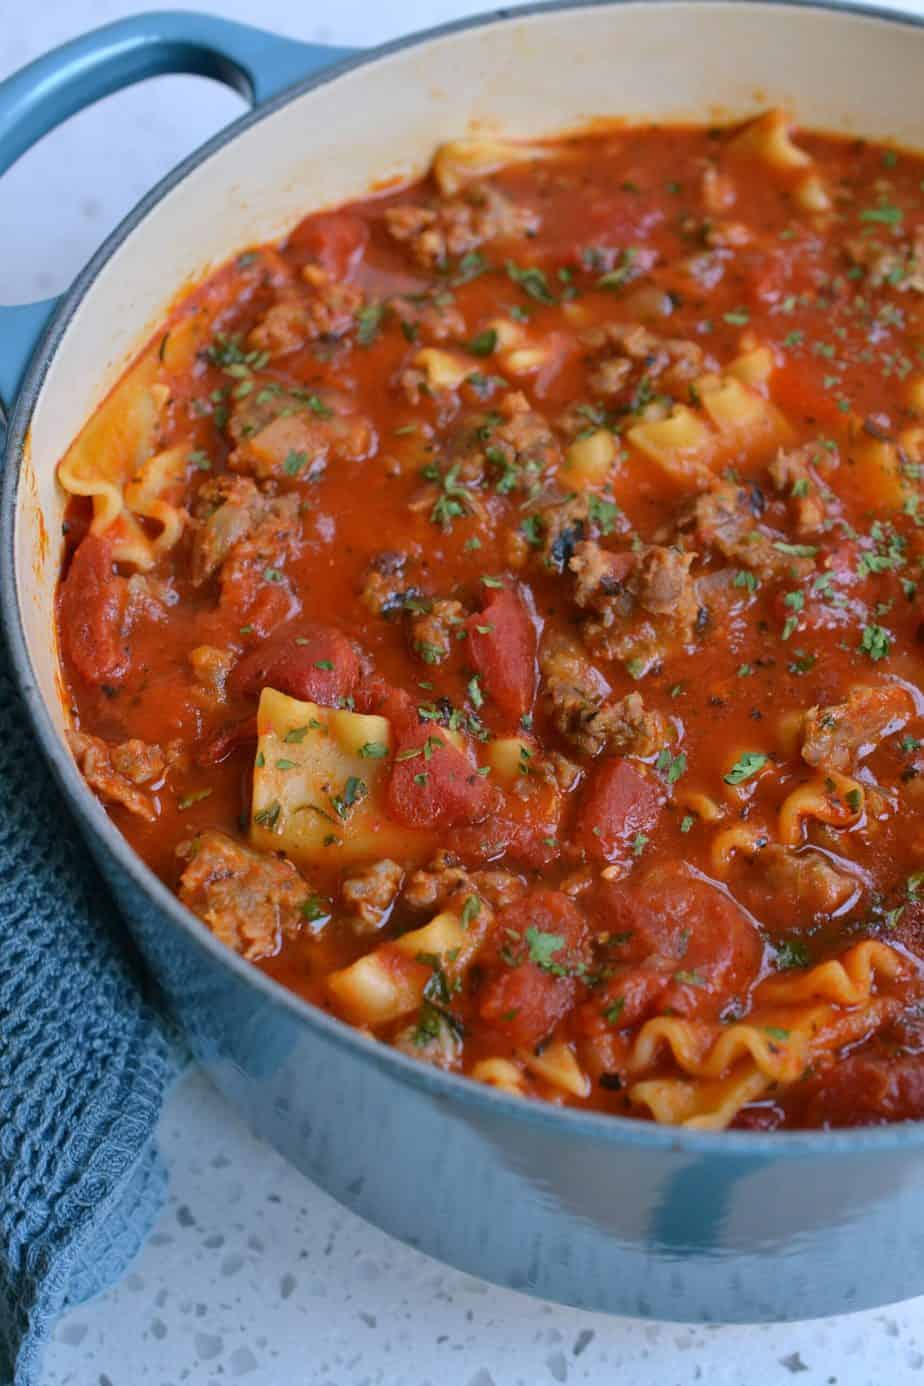 How to make Lasagna Soup